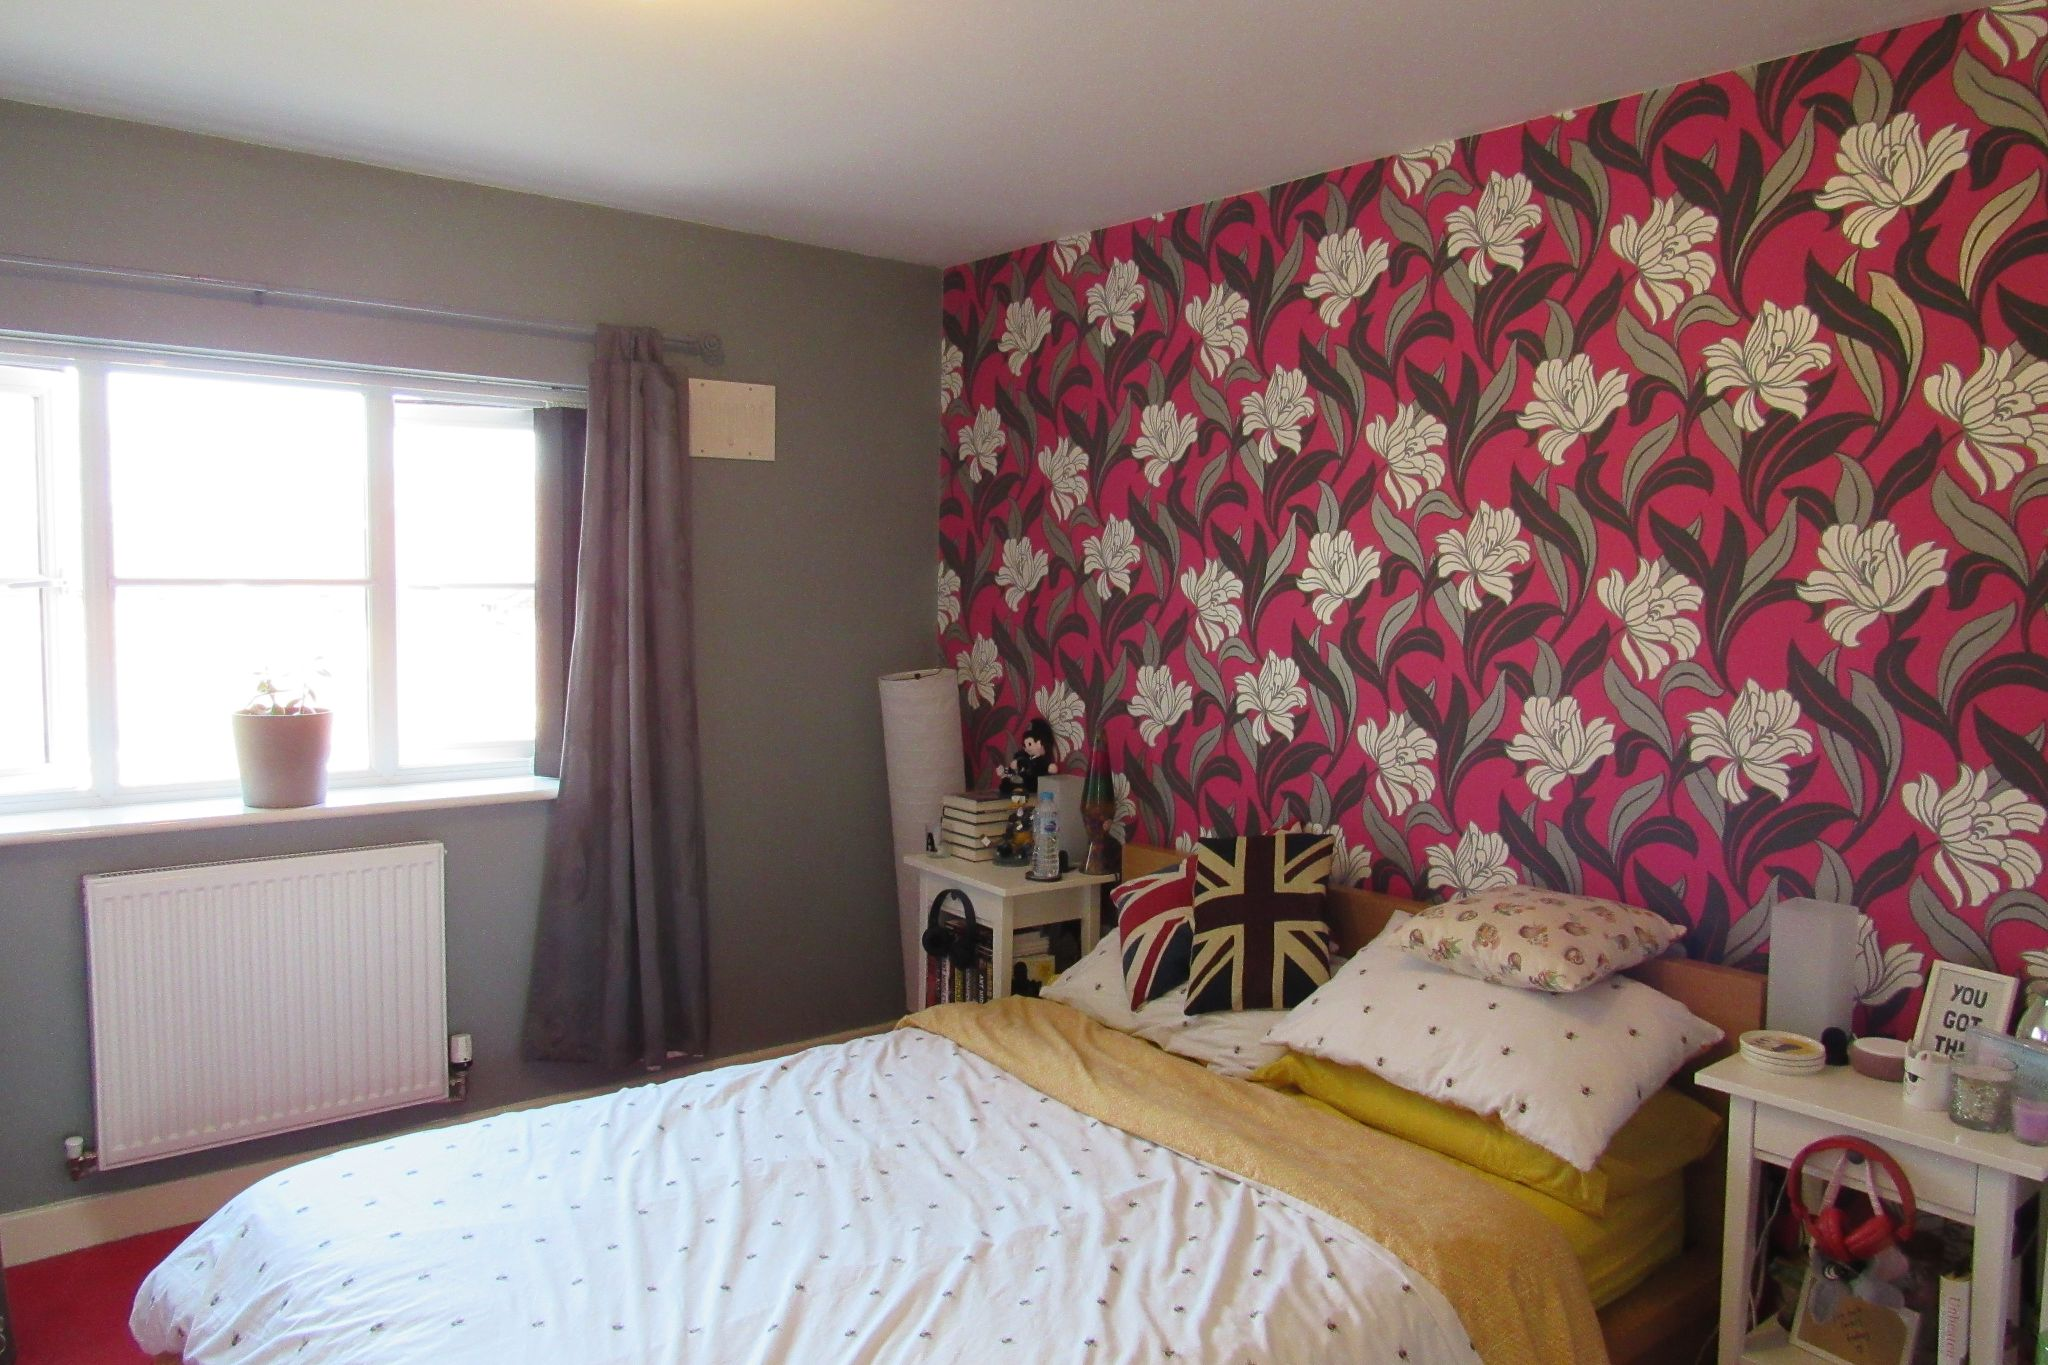 2 bedroom semi-detached house SSTC in Manchester - Photograph 9.